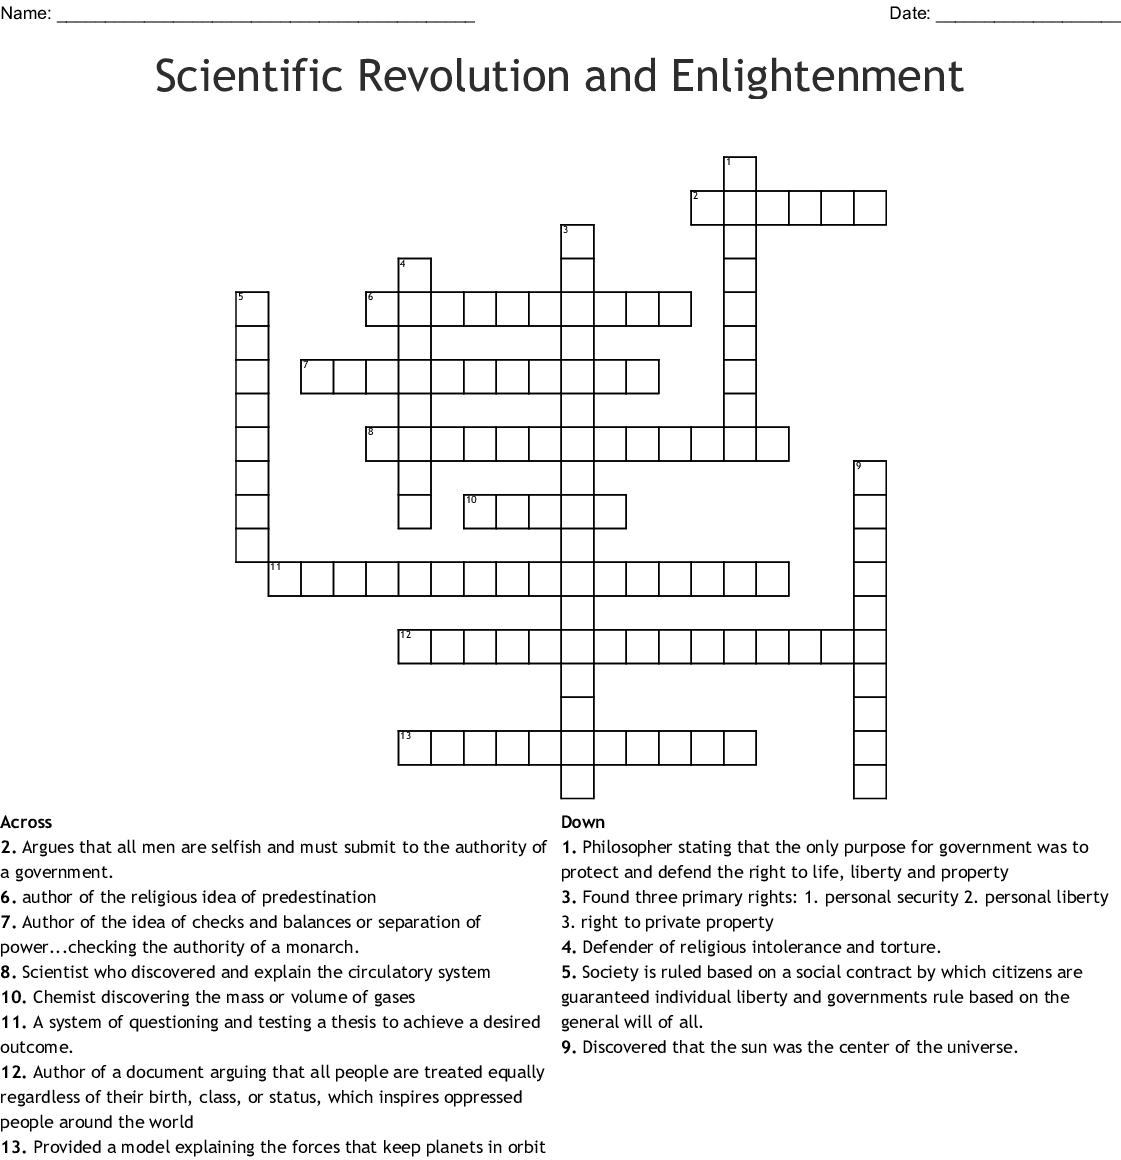 Scientific Revolution And Enlightenment Crossword